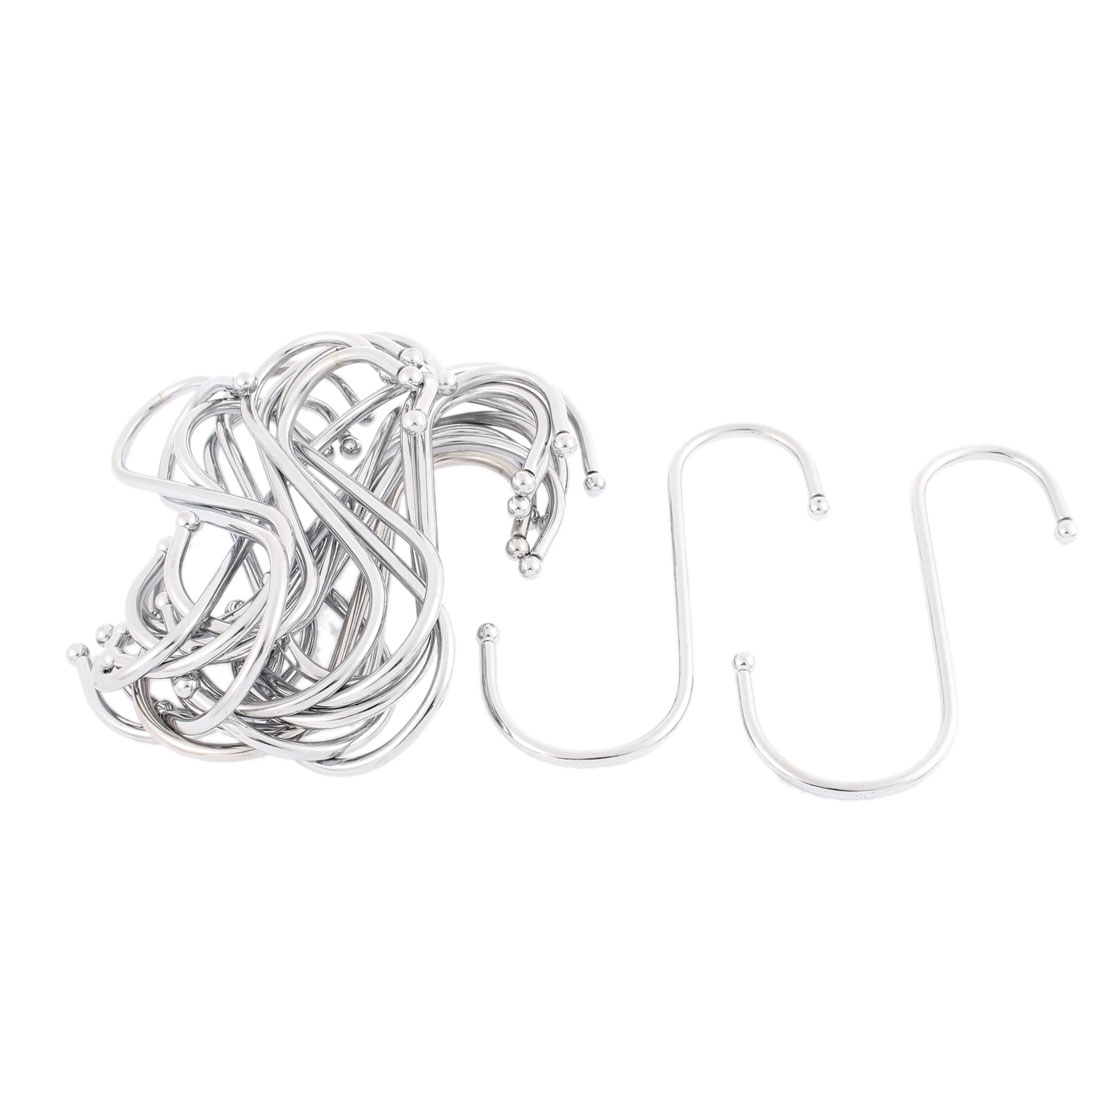 Bathroom Stainless Steel S Shaped Hanger Clasp Hooks 3 Inch Length 30 Pcs